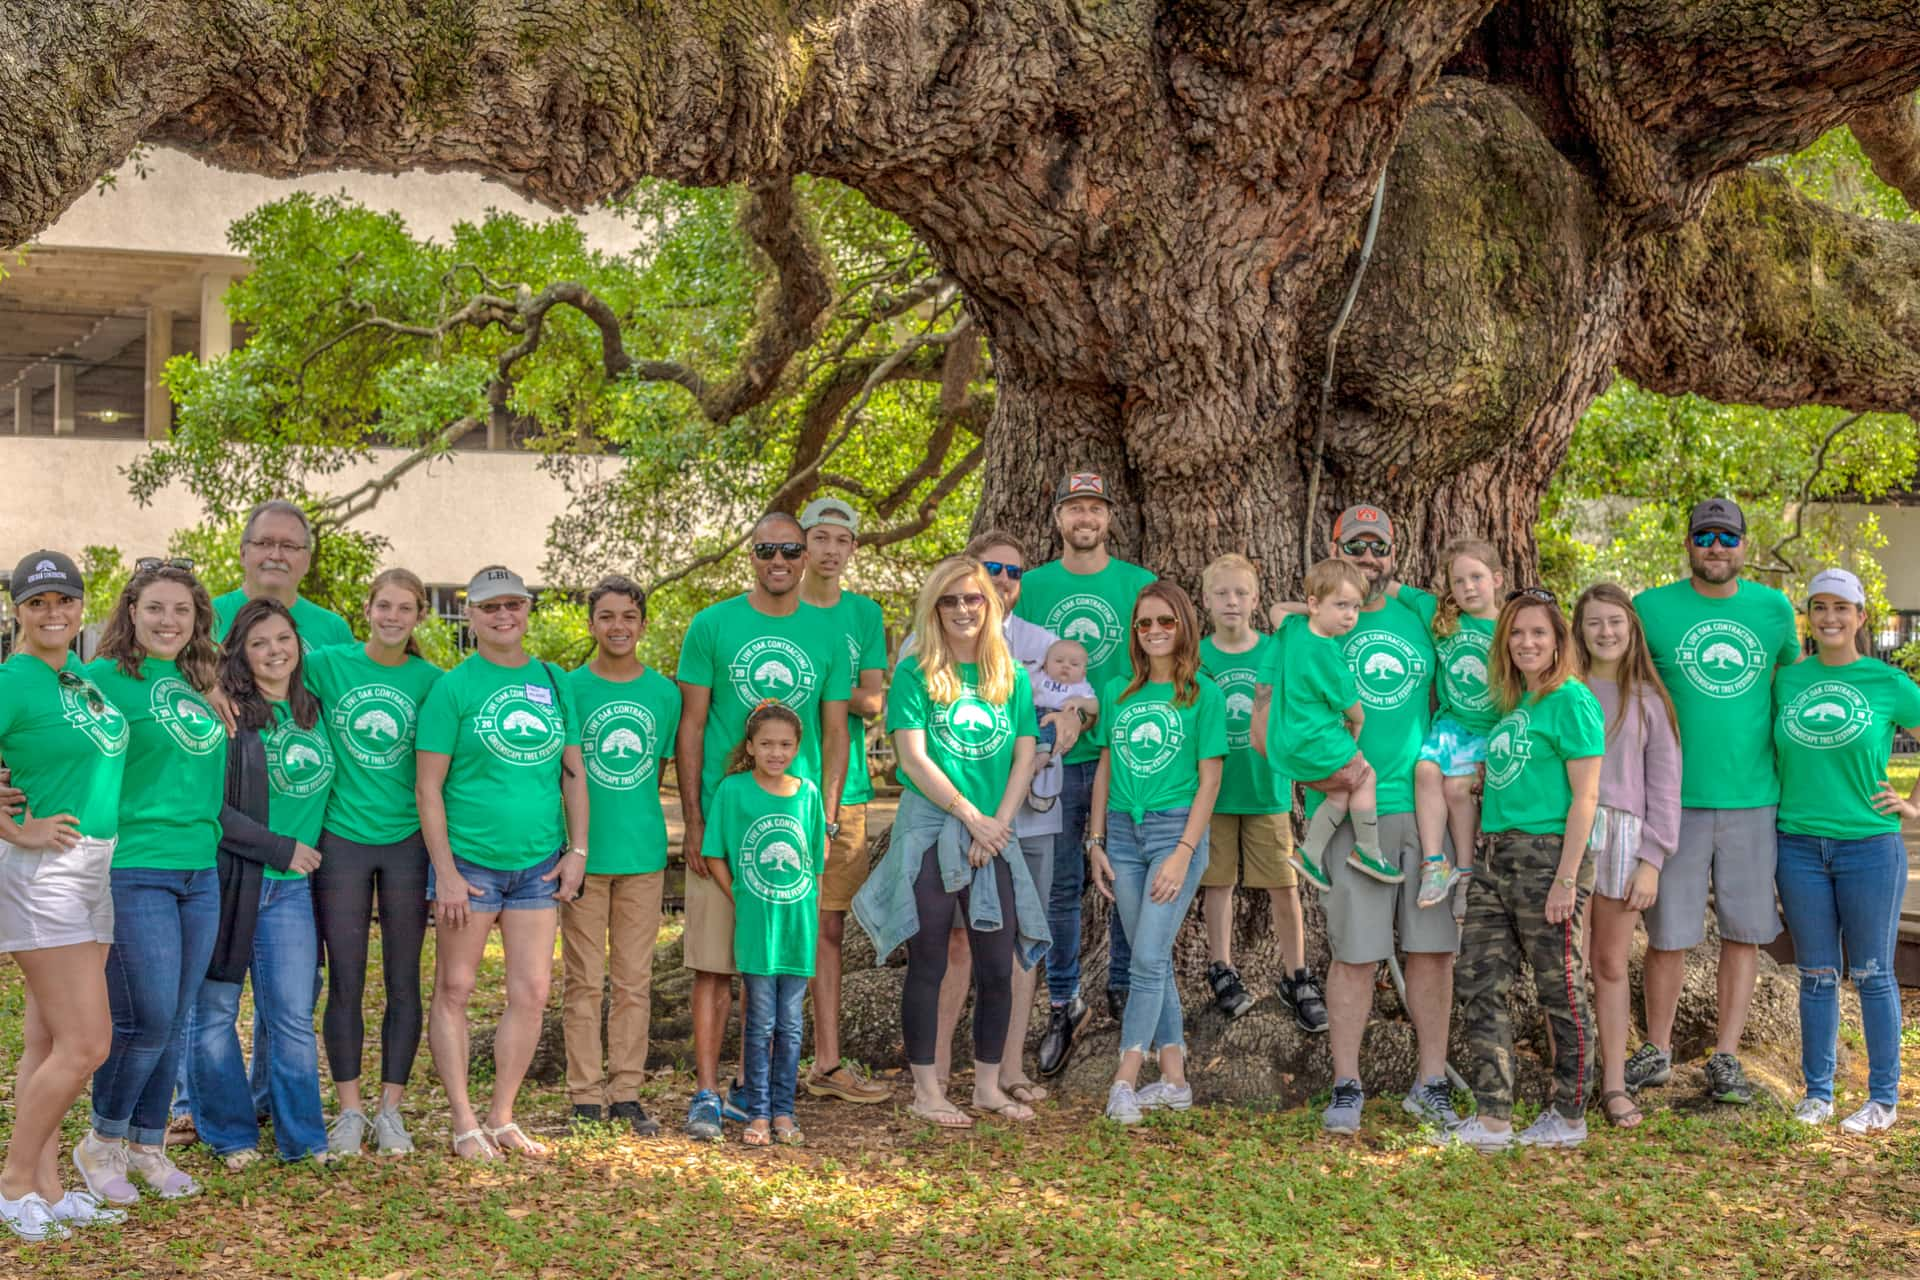 group of people matching shirts under tree